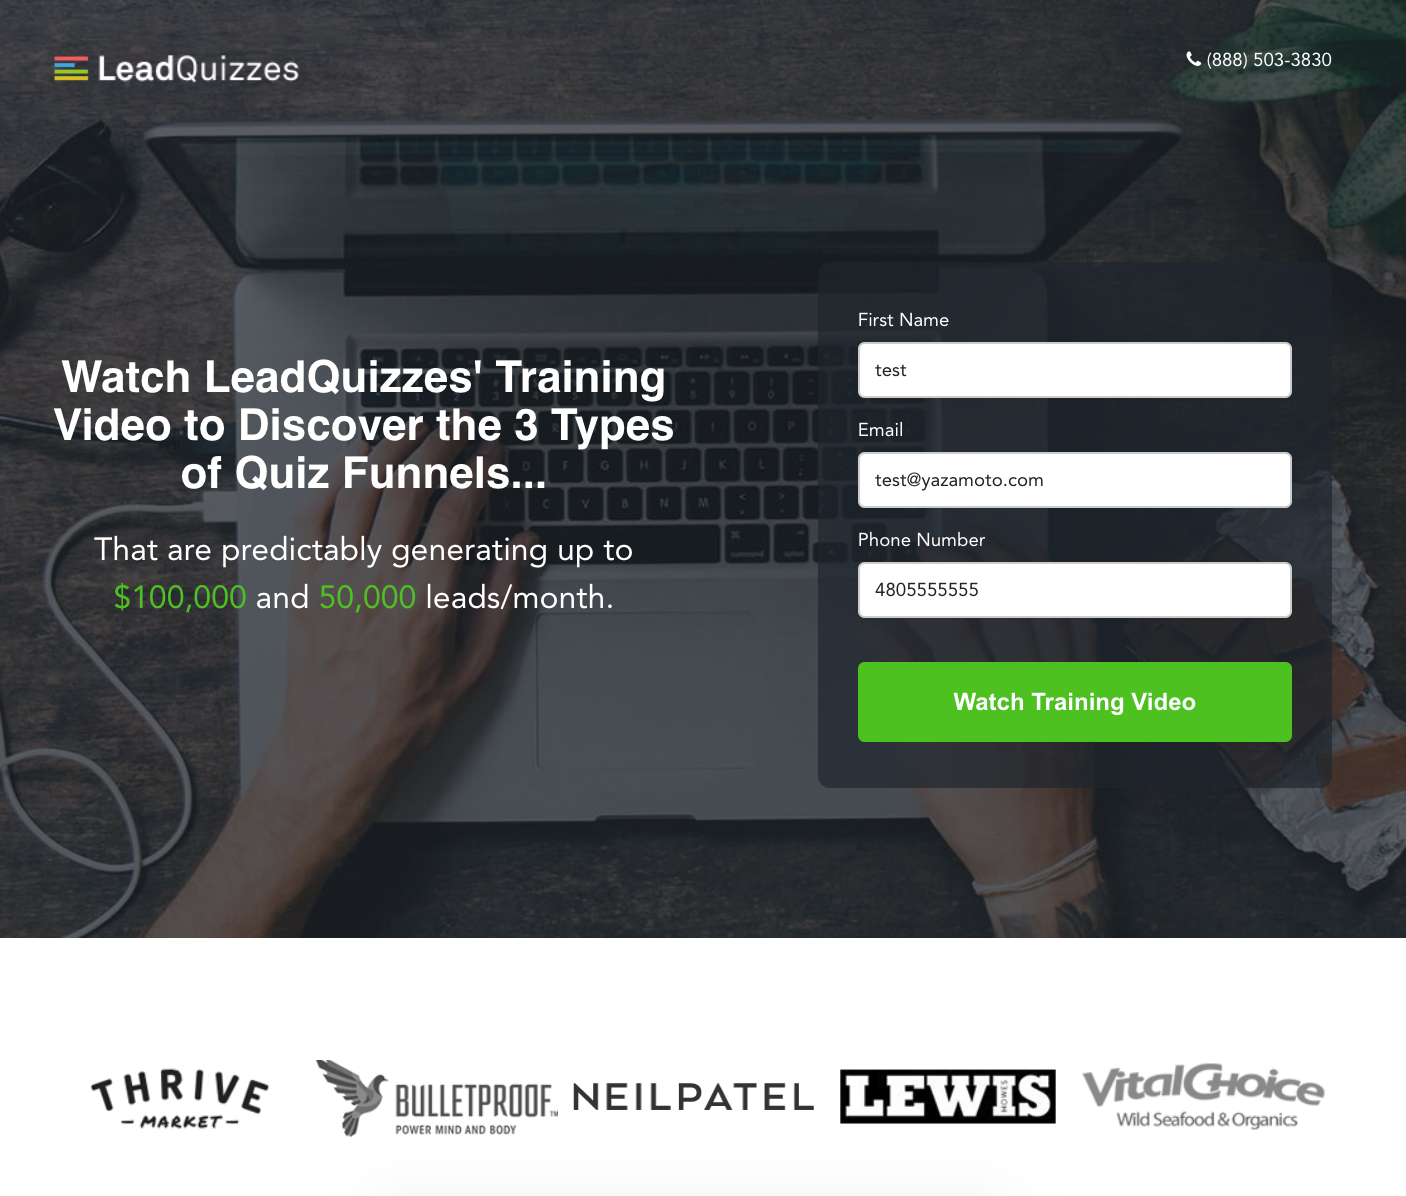 LeadQuizzes Landing Page The 3 Types of Quiz Funnels